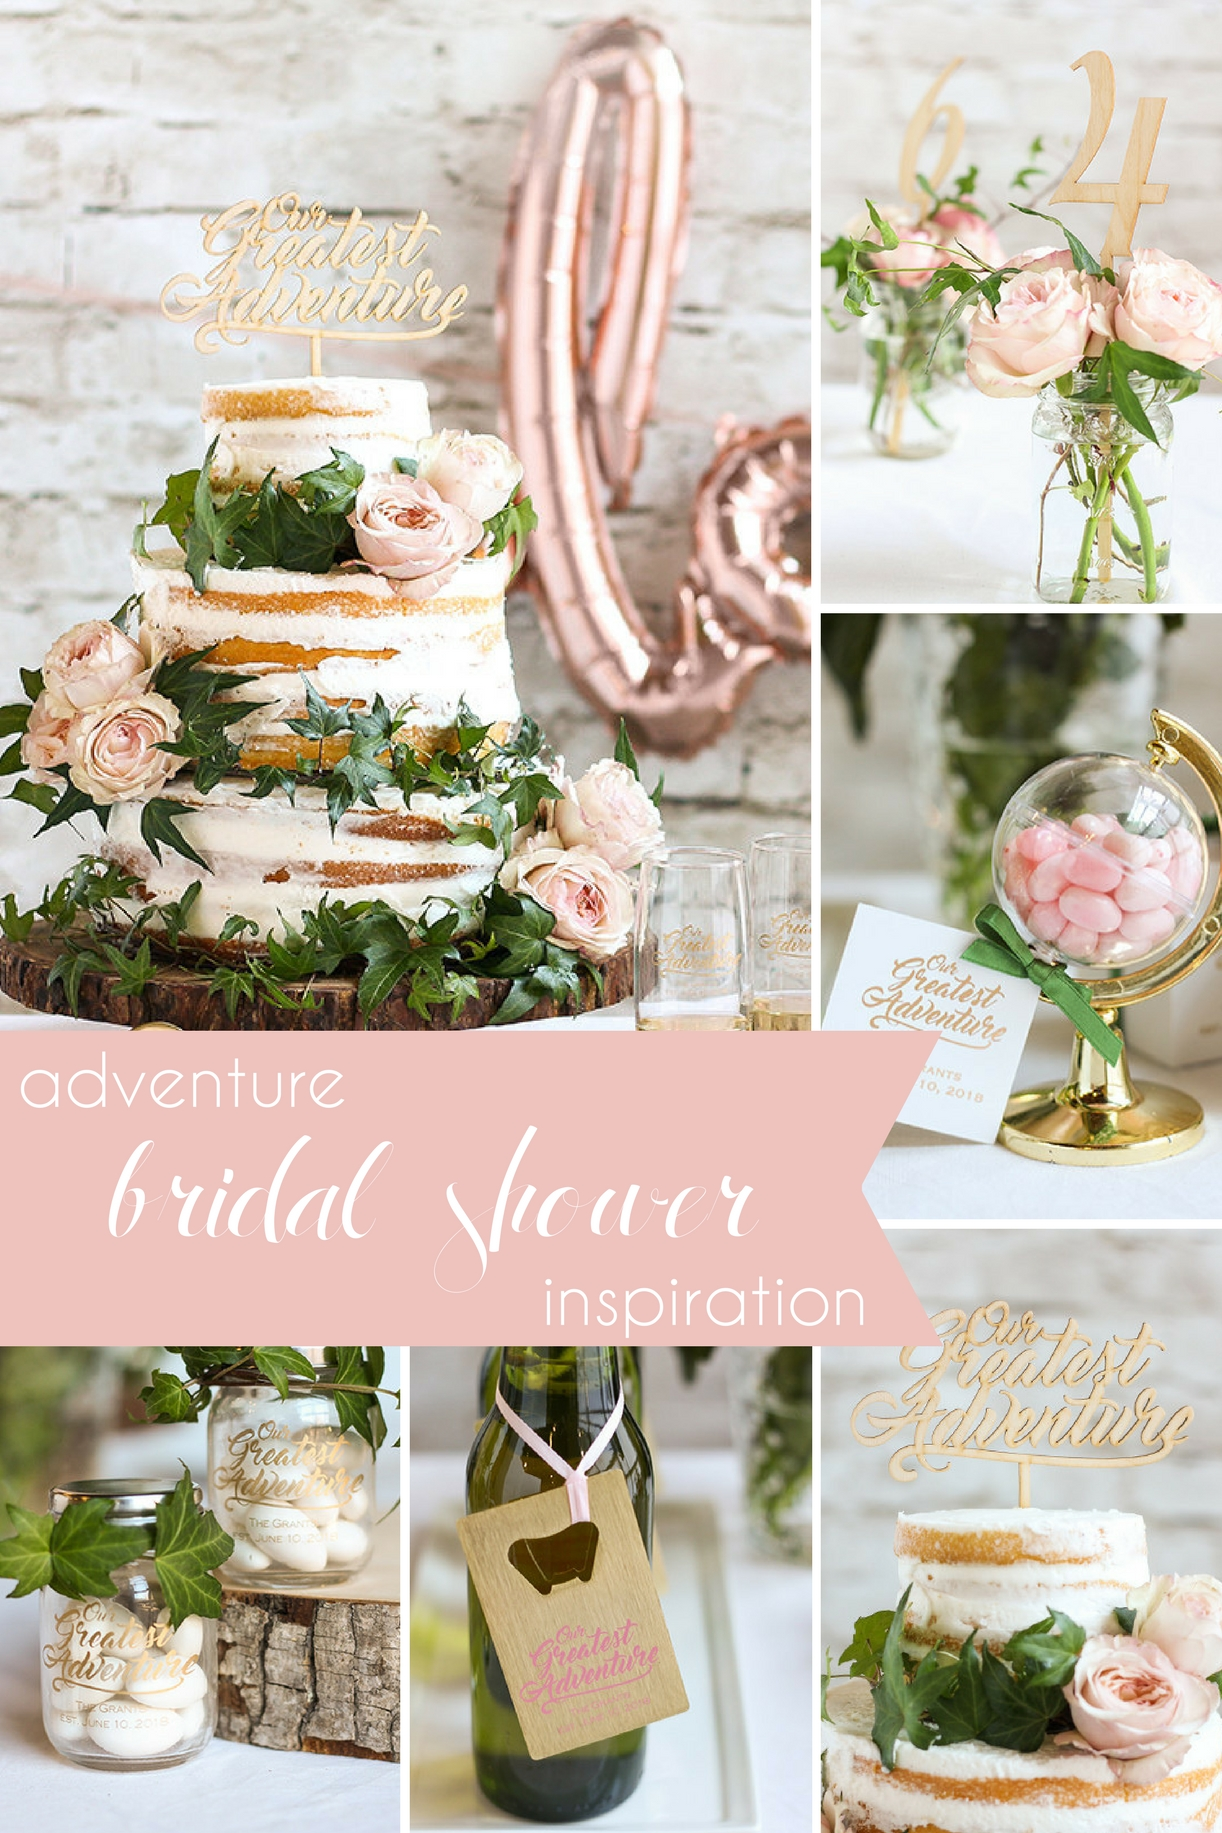 Adventure Bridal Shower Inspiration » Hill City Bride | Virginia ...